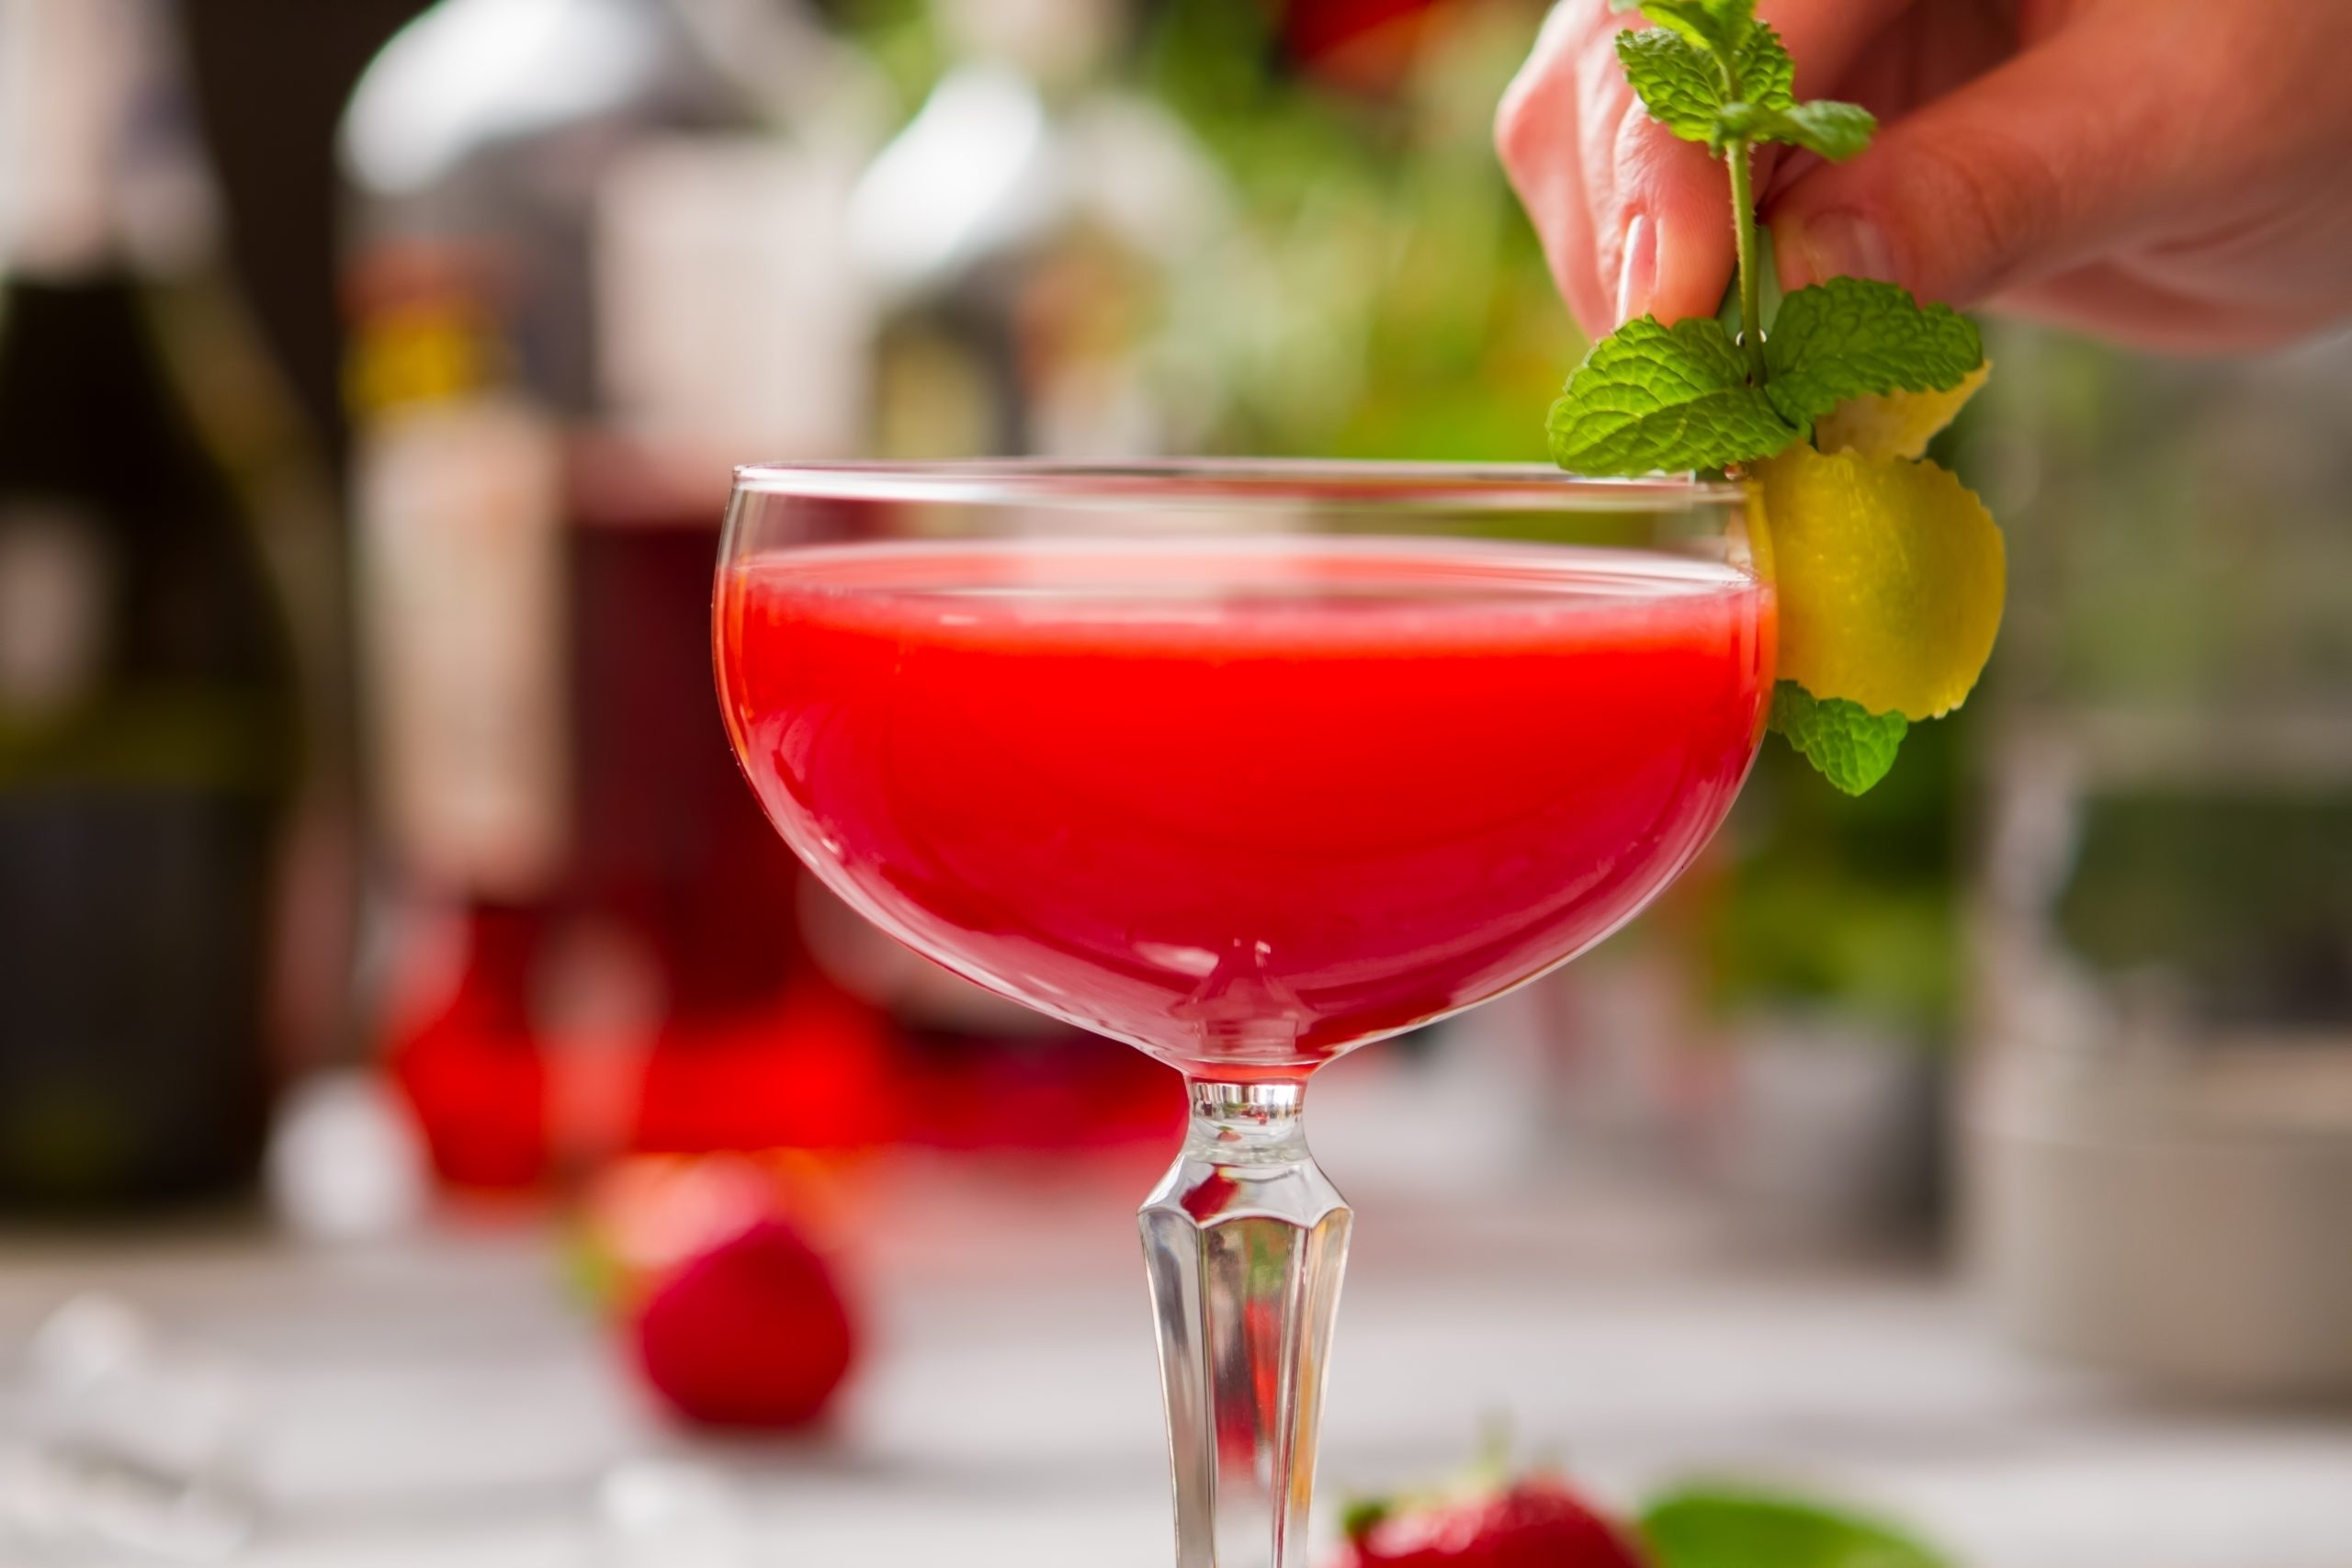 The red drink that lowers high blood sugar levels within 15 minutes of intake